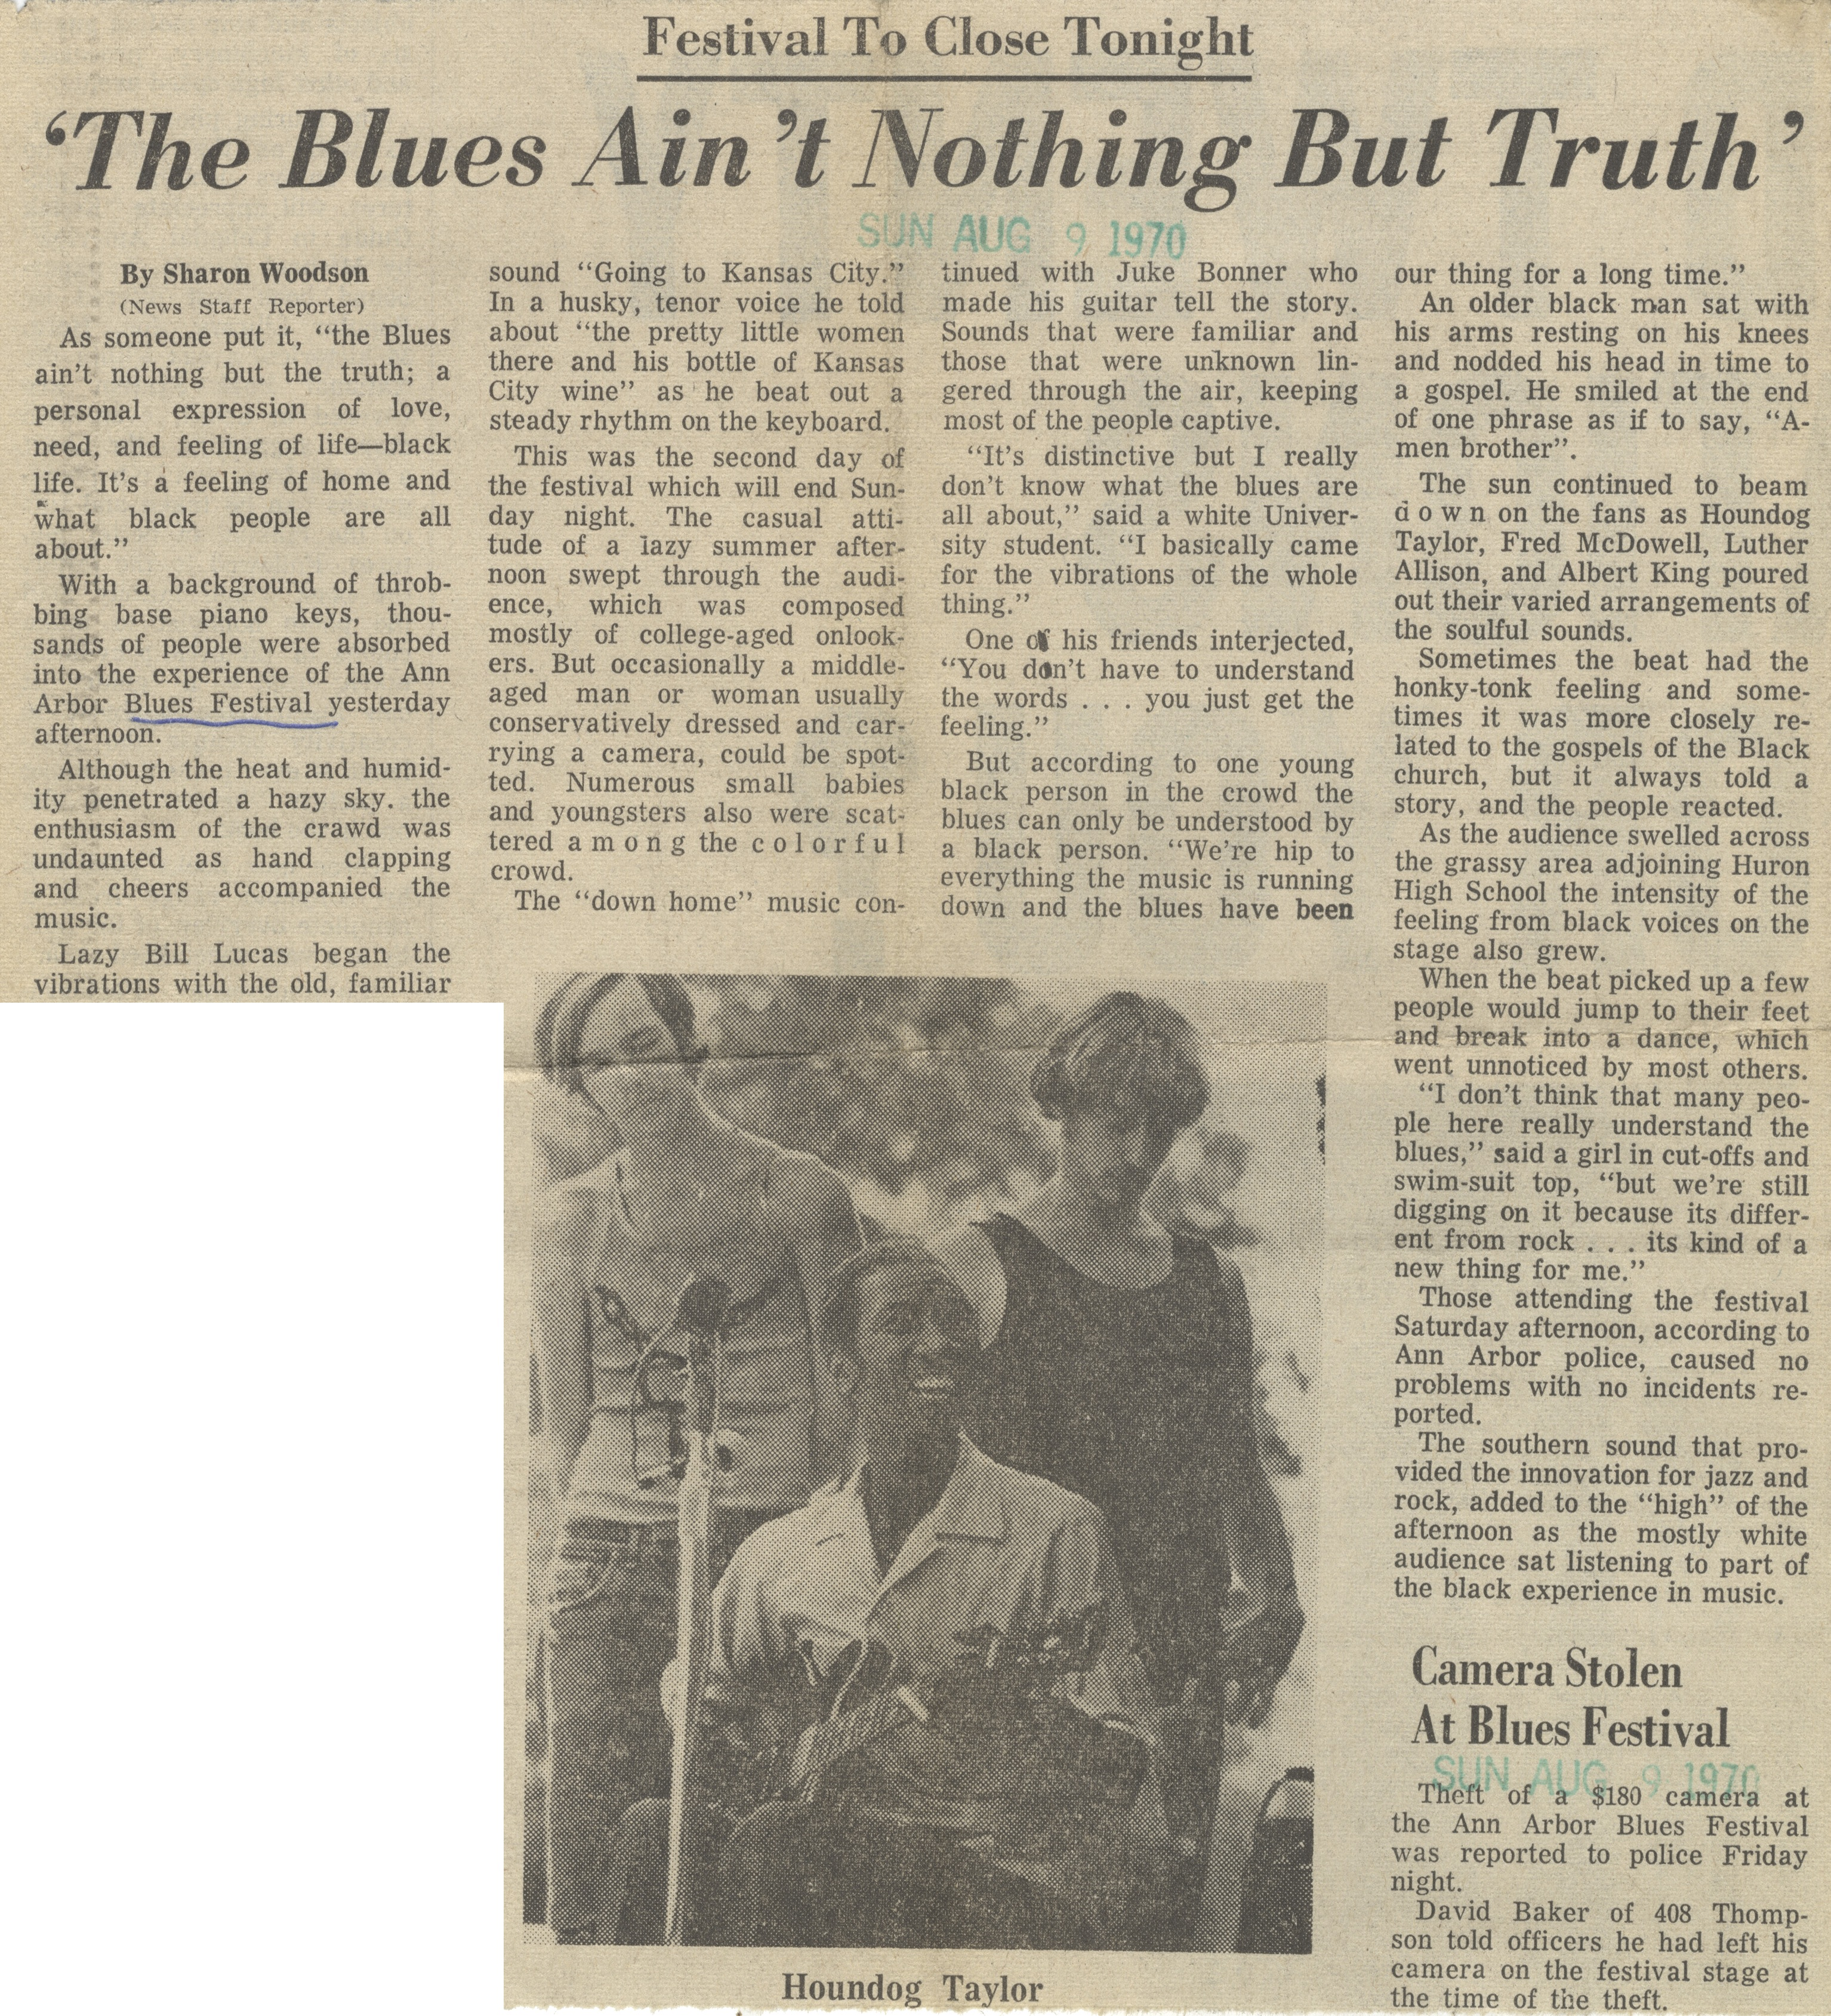 'The Blues Ain't Nothing But Truth' image